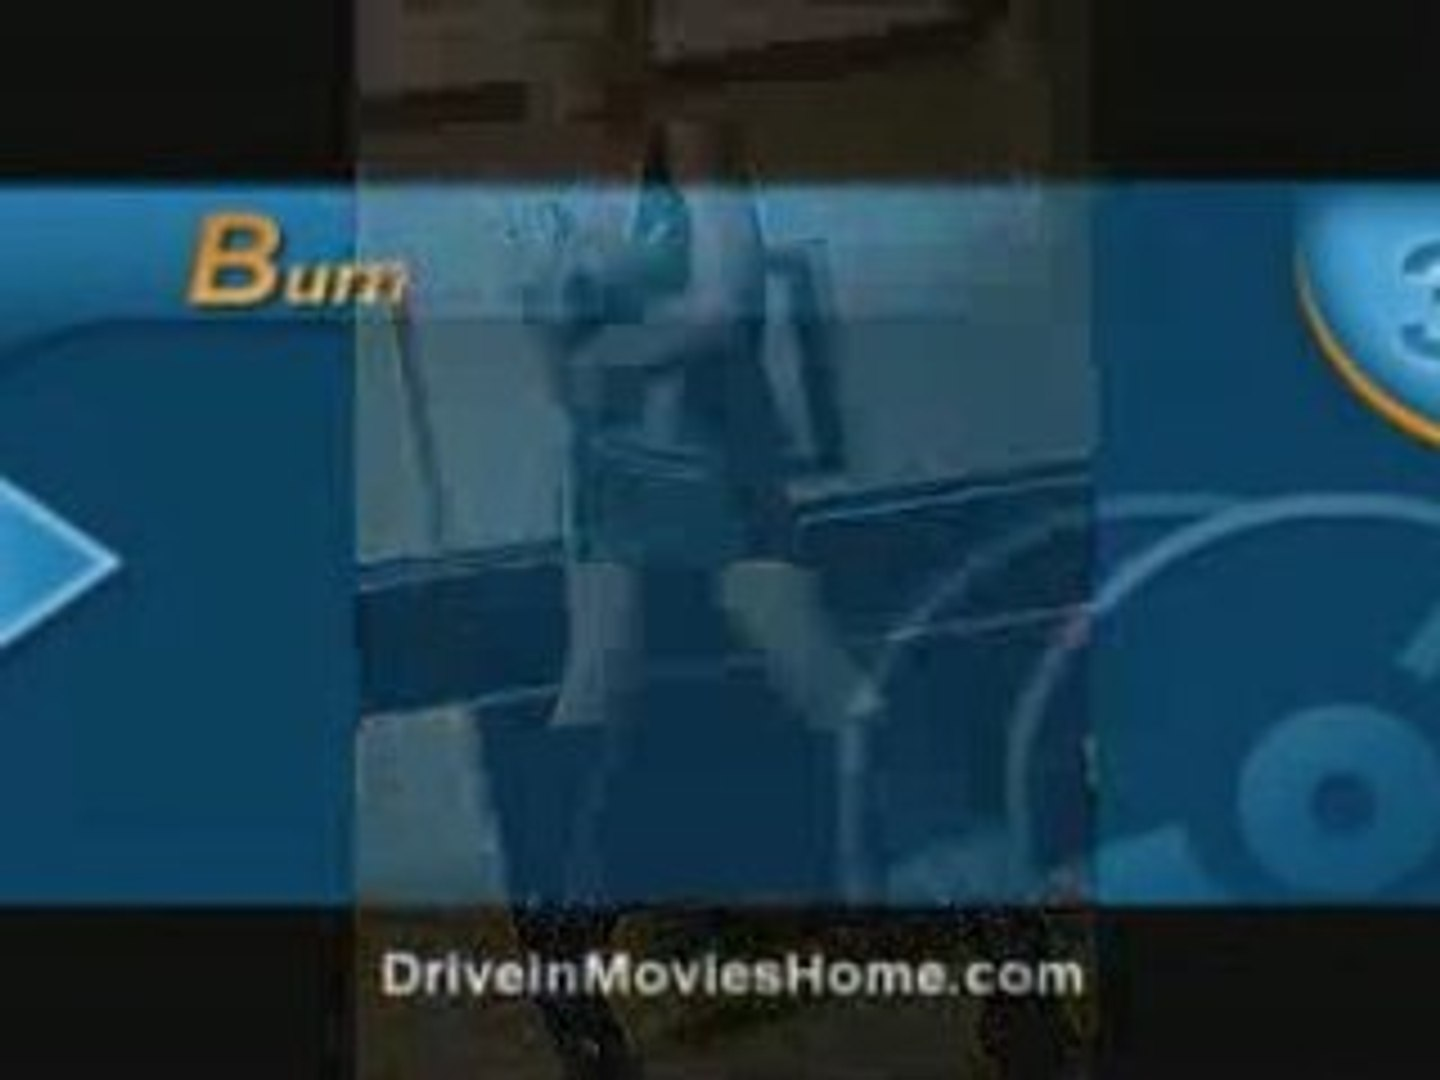 Drivin movies download movies home movies movie